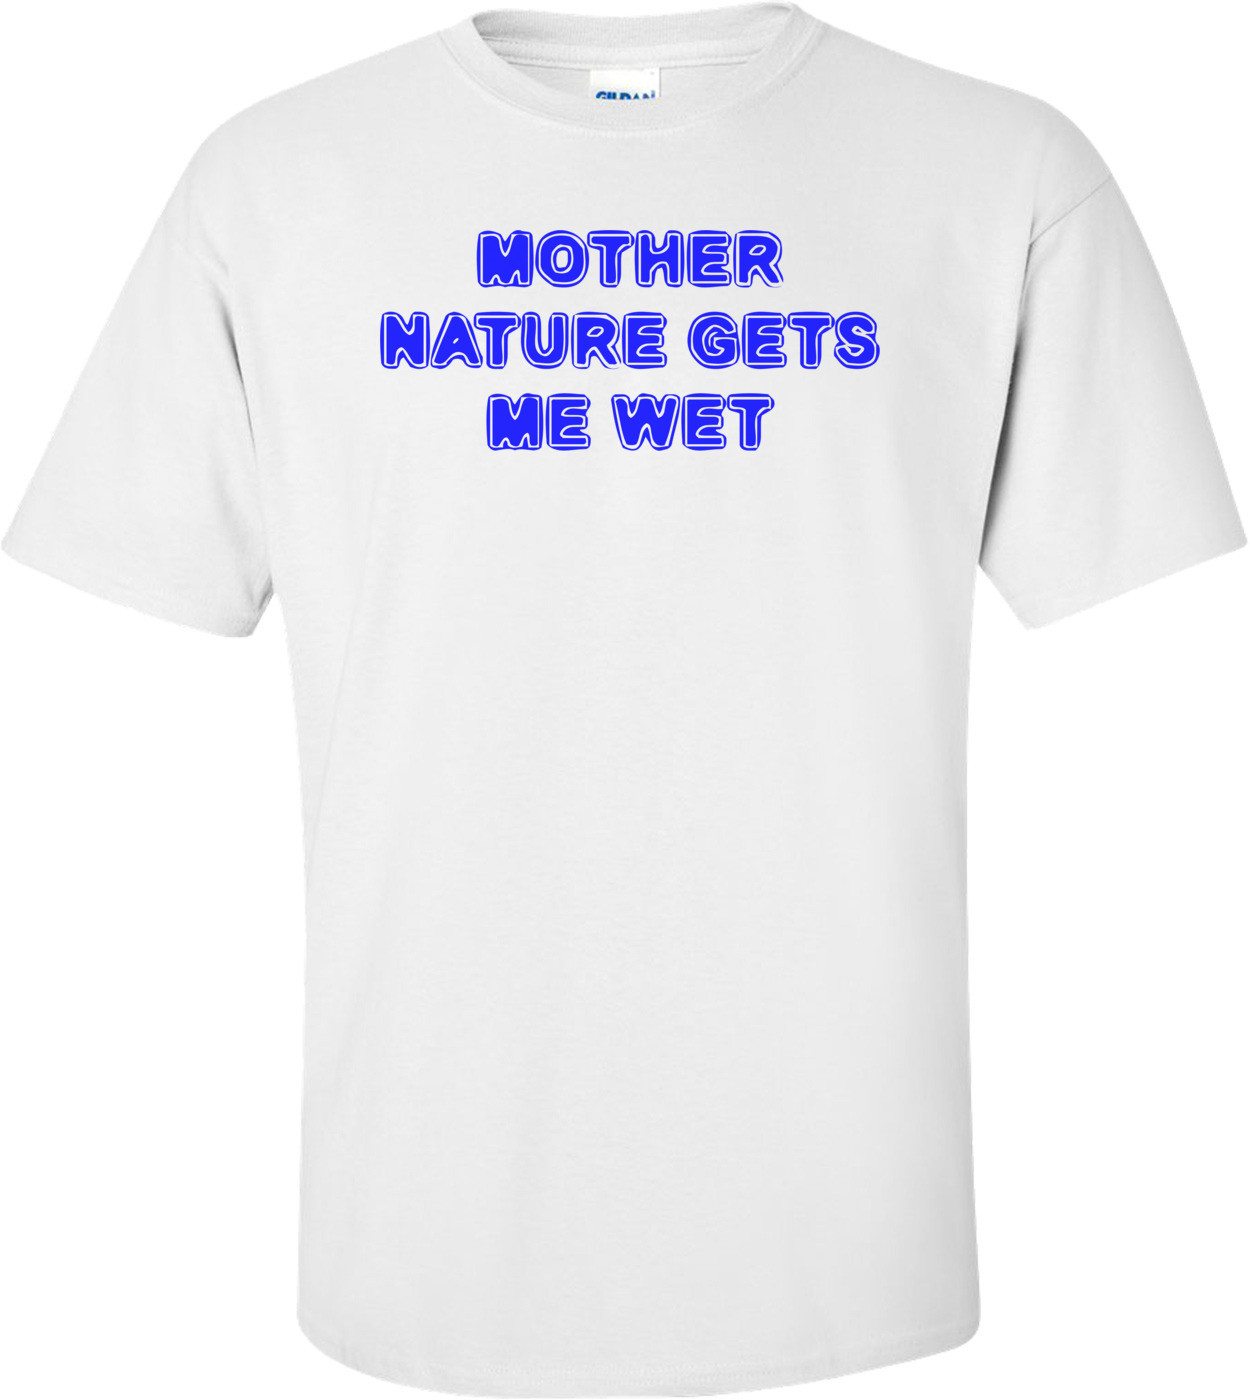 MOTHER NATURE GETS ME WET Shirt